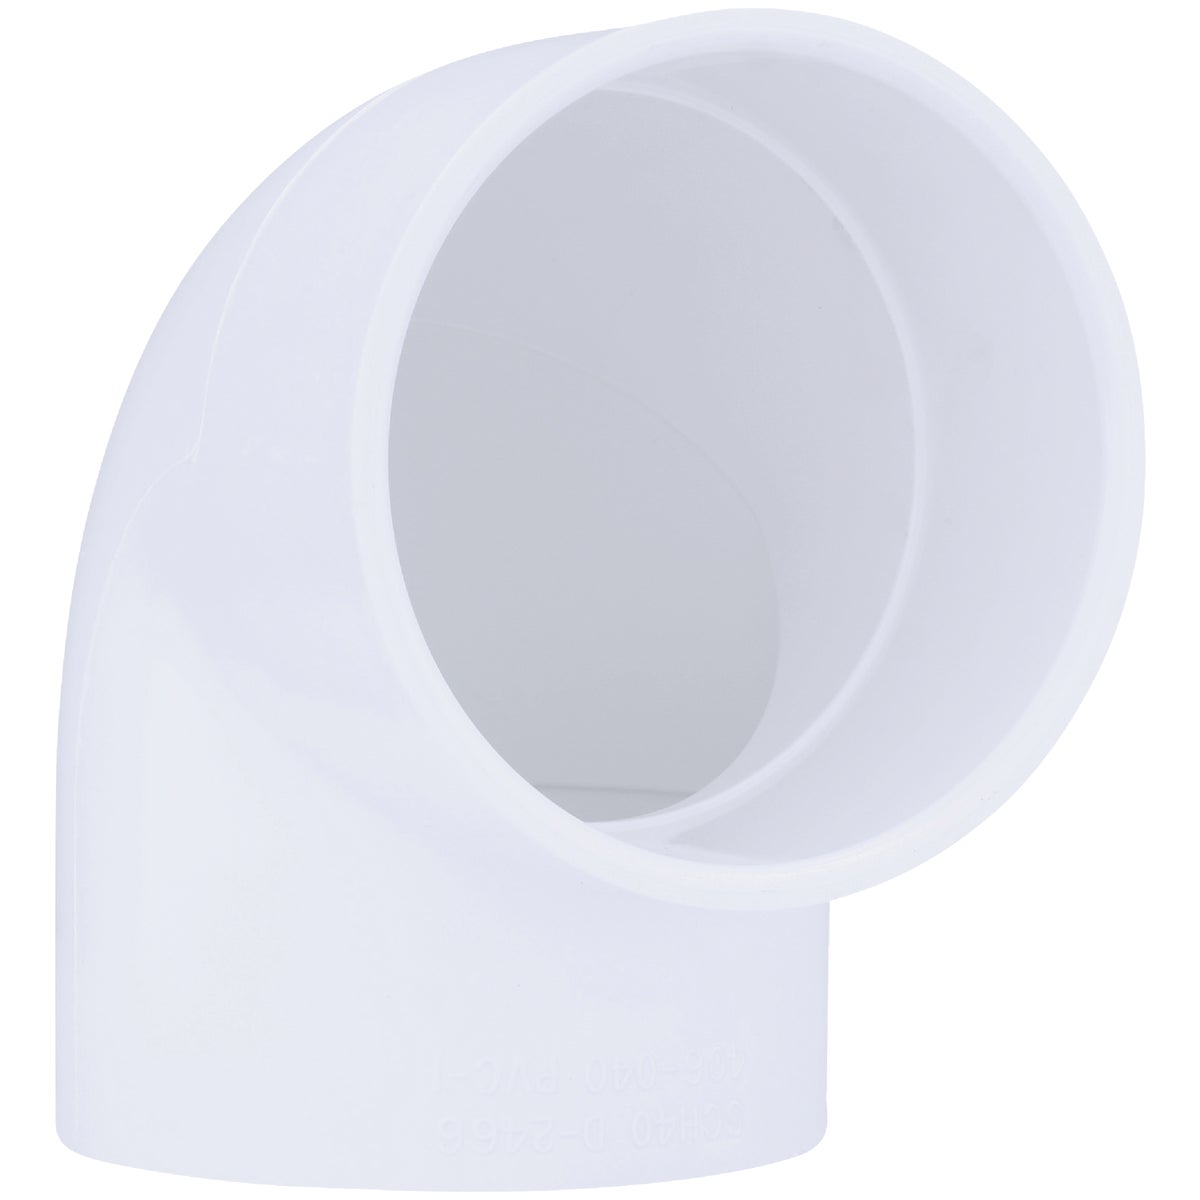 "4"" 90D SCH40 PVC ELBOW - 30740 by Genova Inc"